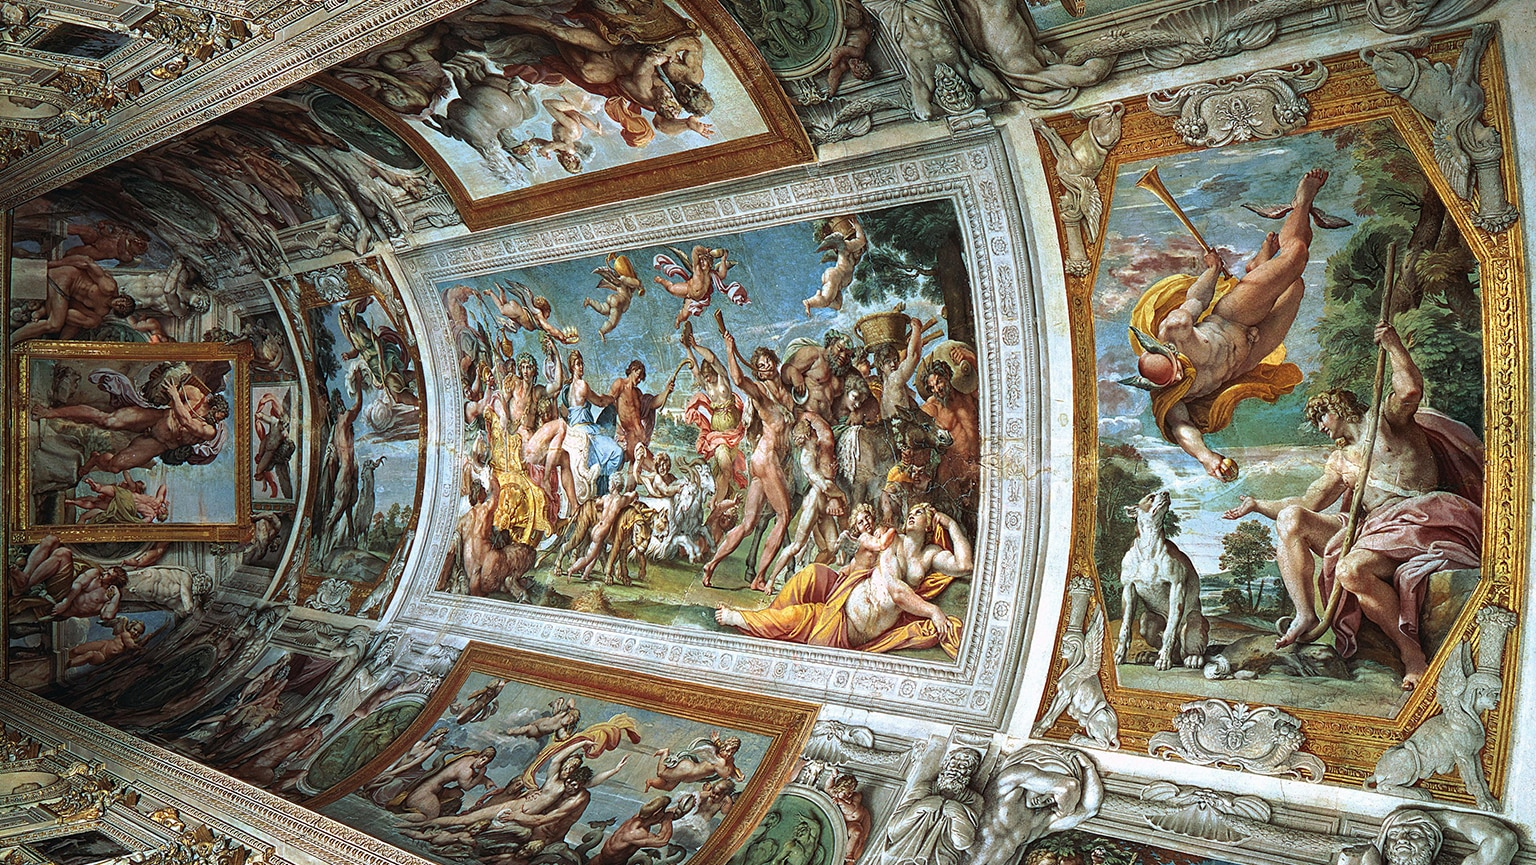 Annibale Carracci and the Reform of Art